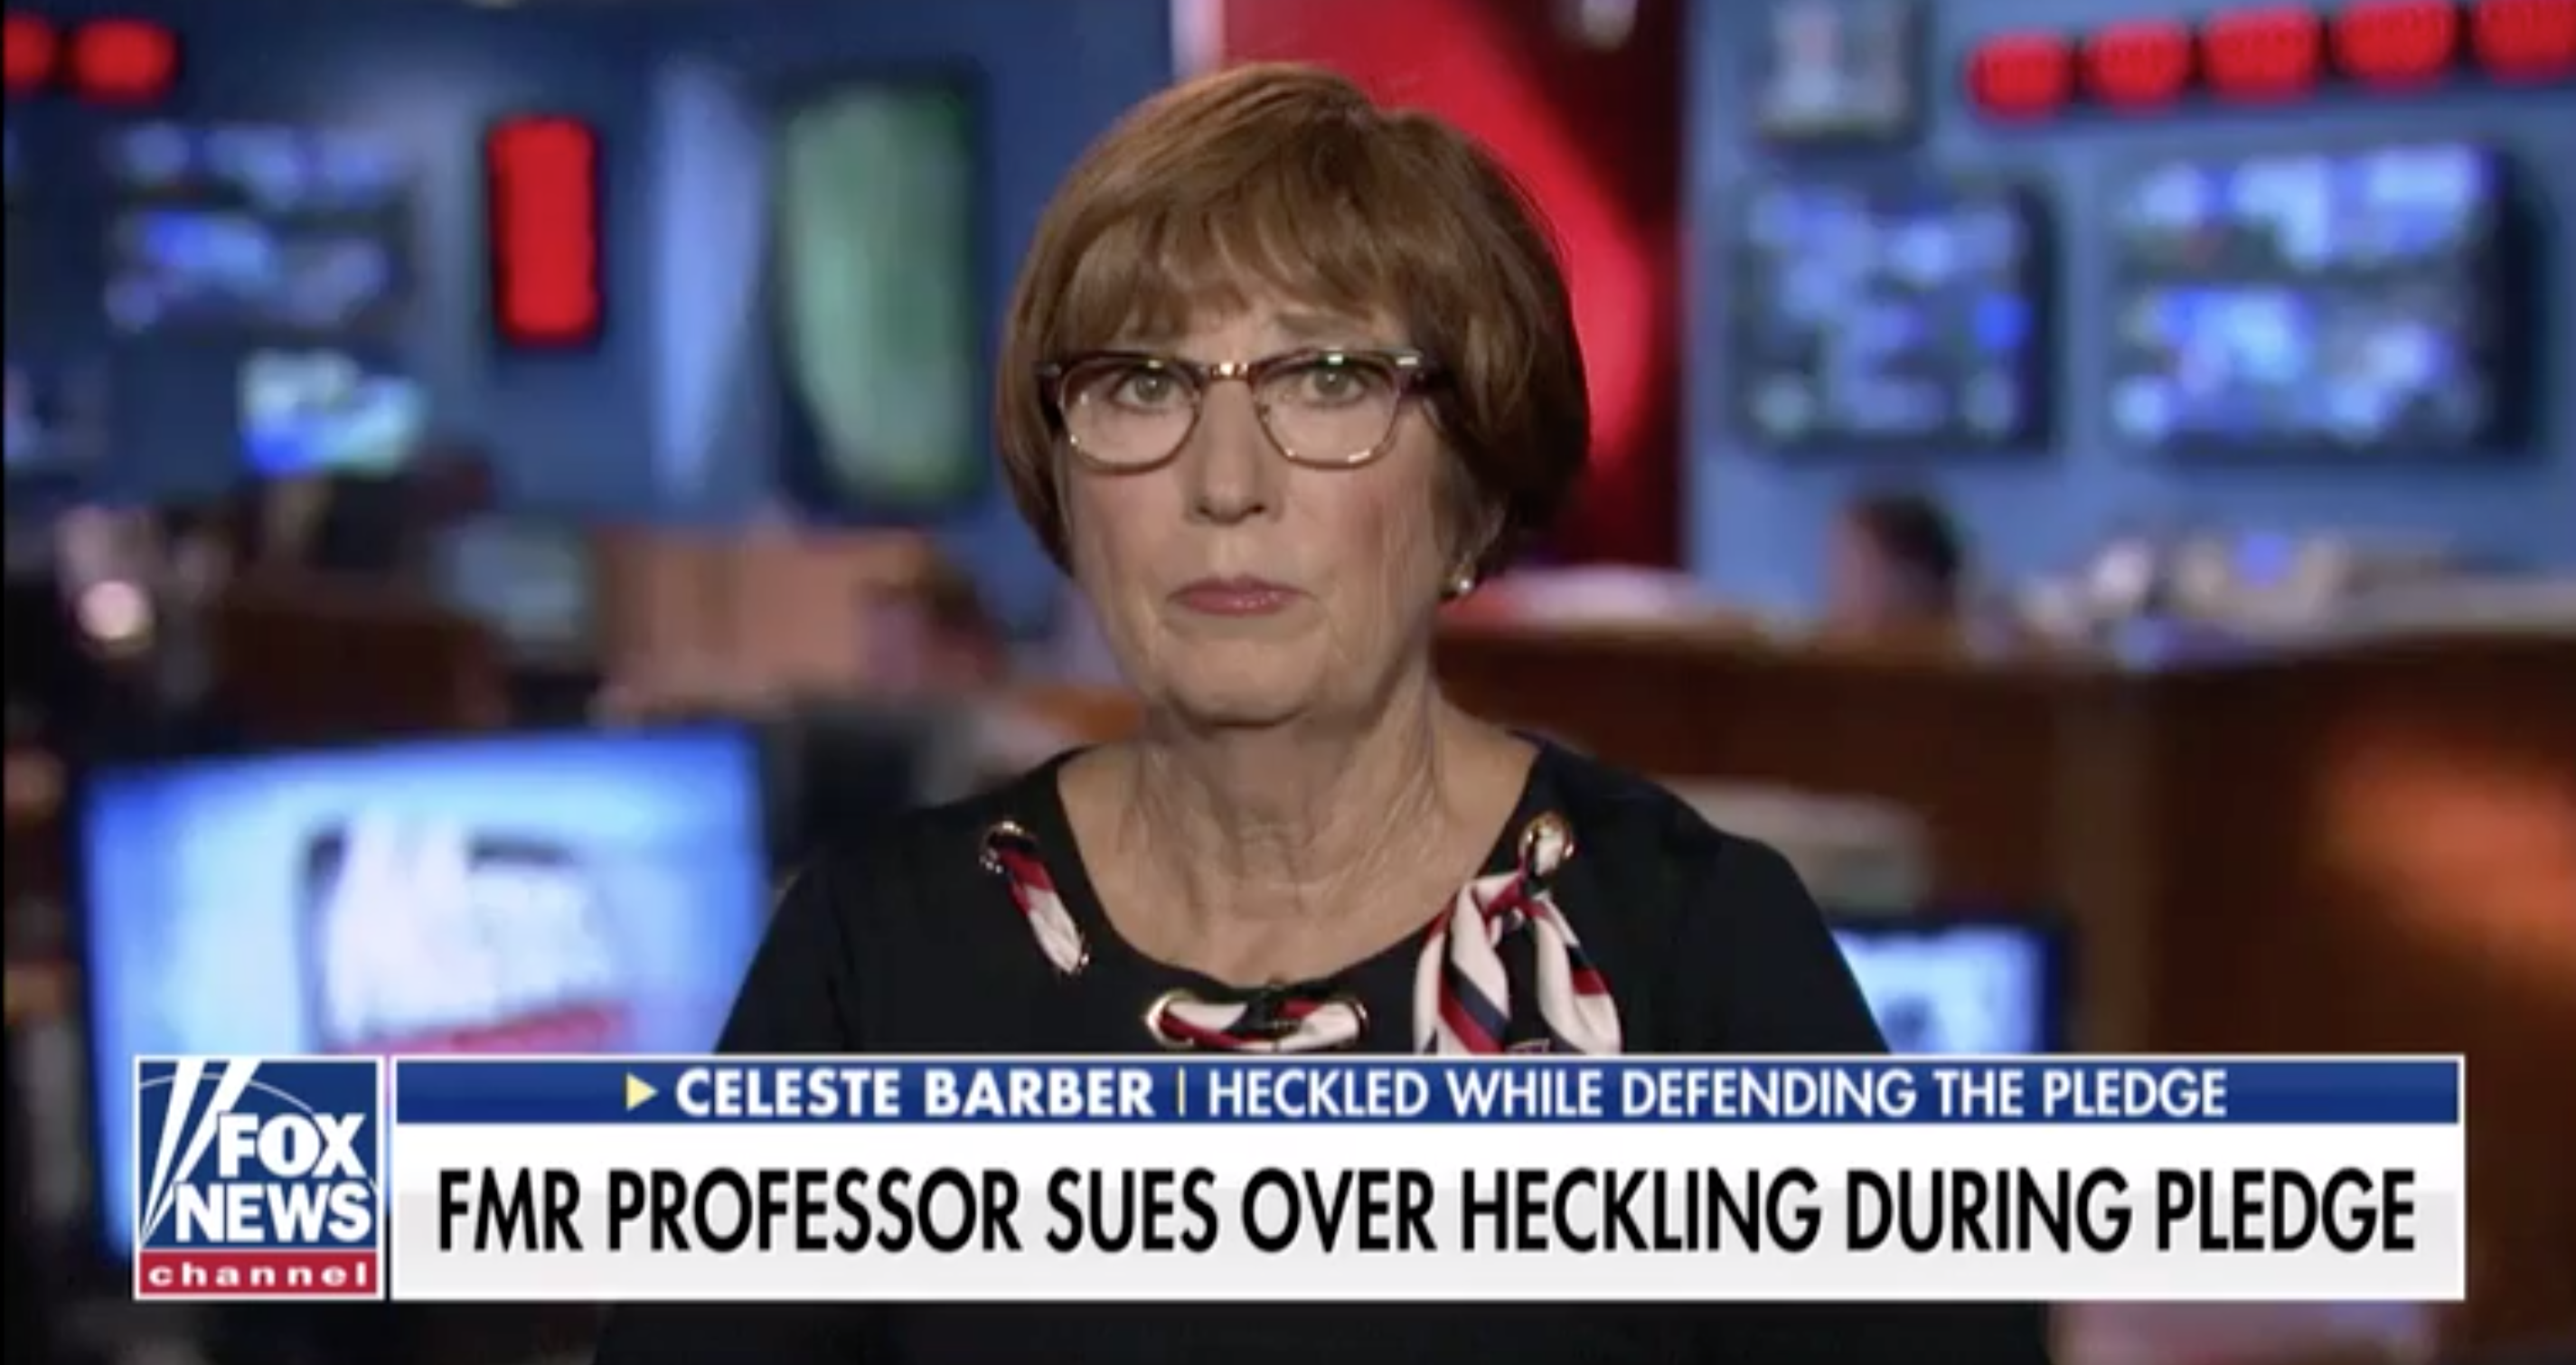 College professor who was heckled for defending the Pledge of Allegiance sues for violation of civil rights